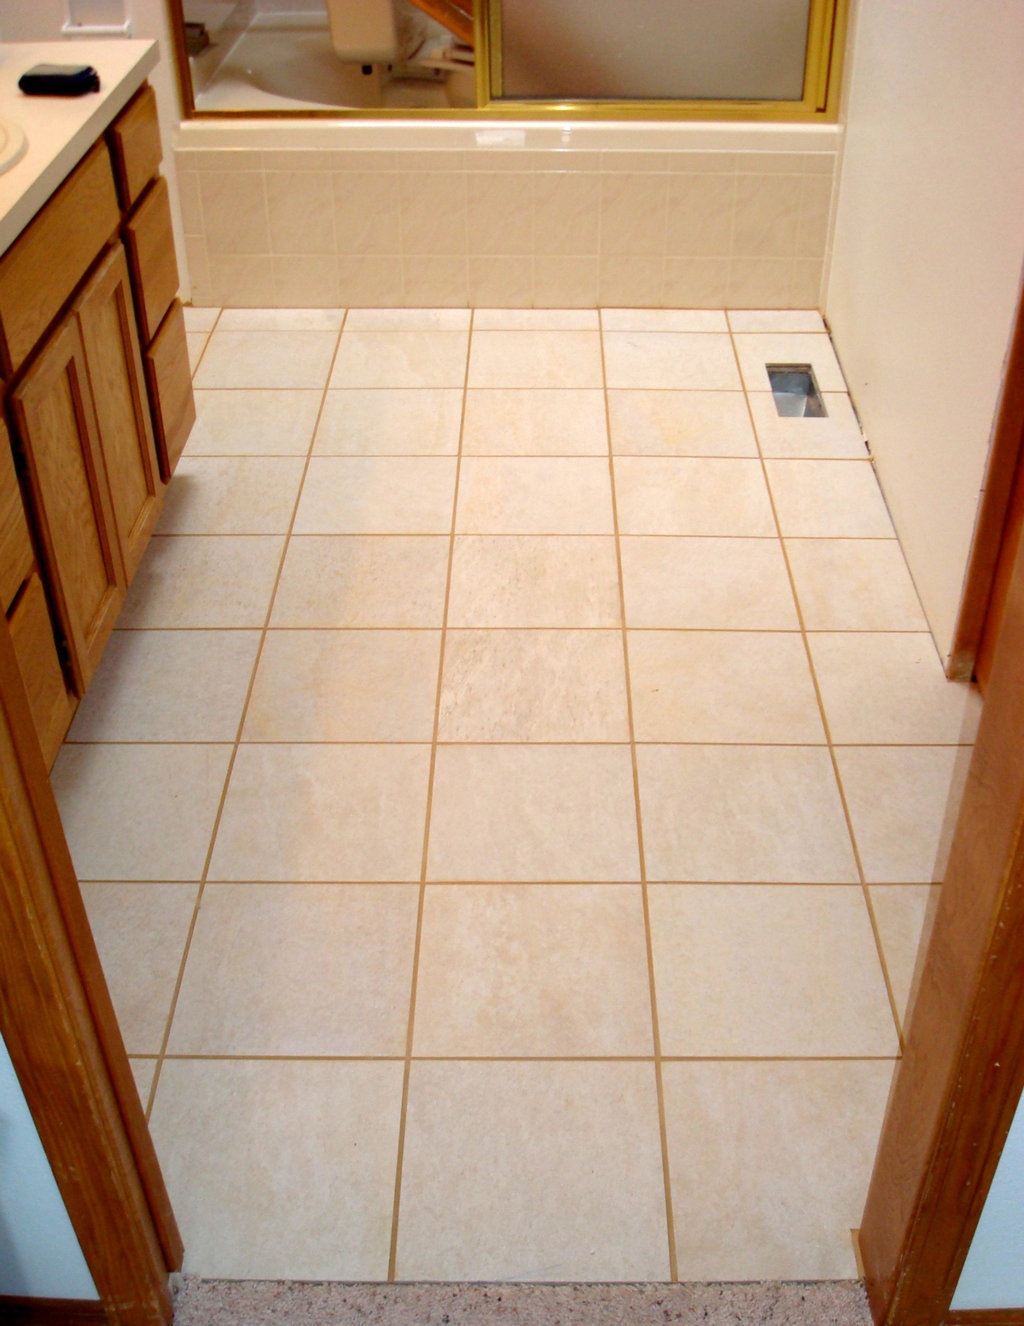 Ceramic tile flooring for your homes | Tiles, Flooring ...